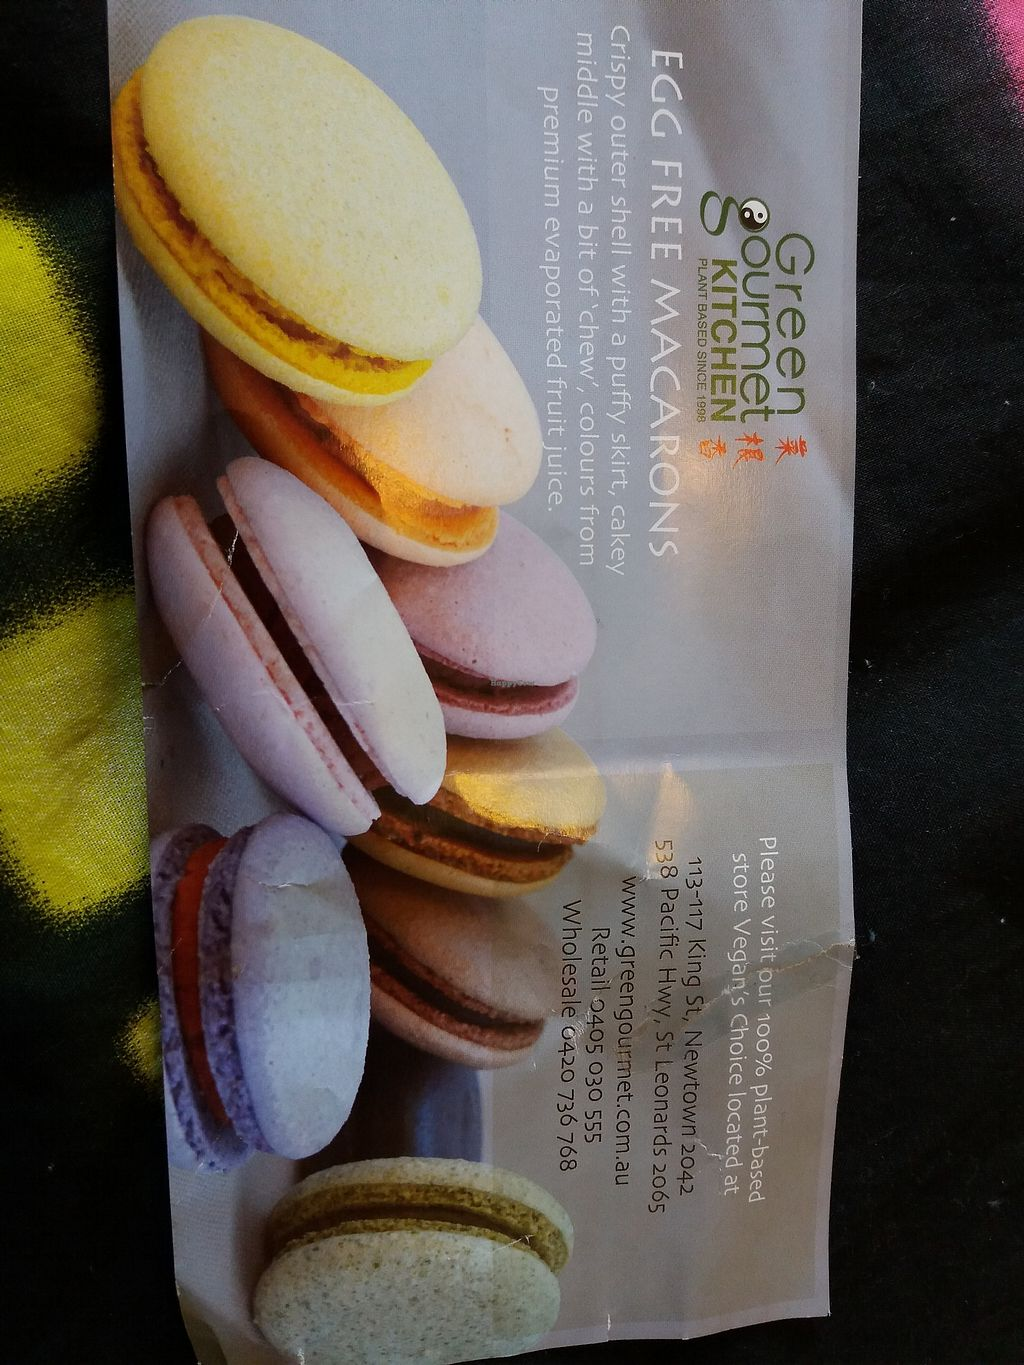 """Photo of Vegan's Choice Grocery  by <a href=""""/members/profile/veganvirtues"""">veganvirtues</a> <br/>Vegan macaroons <br/> June 23, 2017  - <a href='/contact/abuse/image/6695/272473'>Report</a>"""